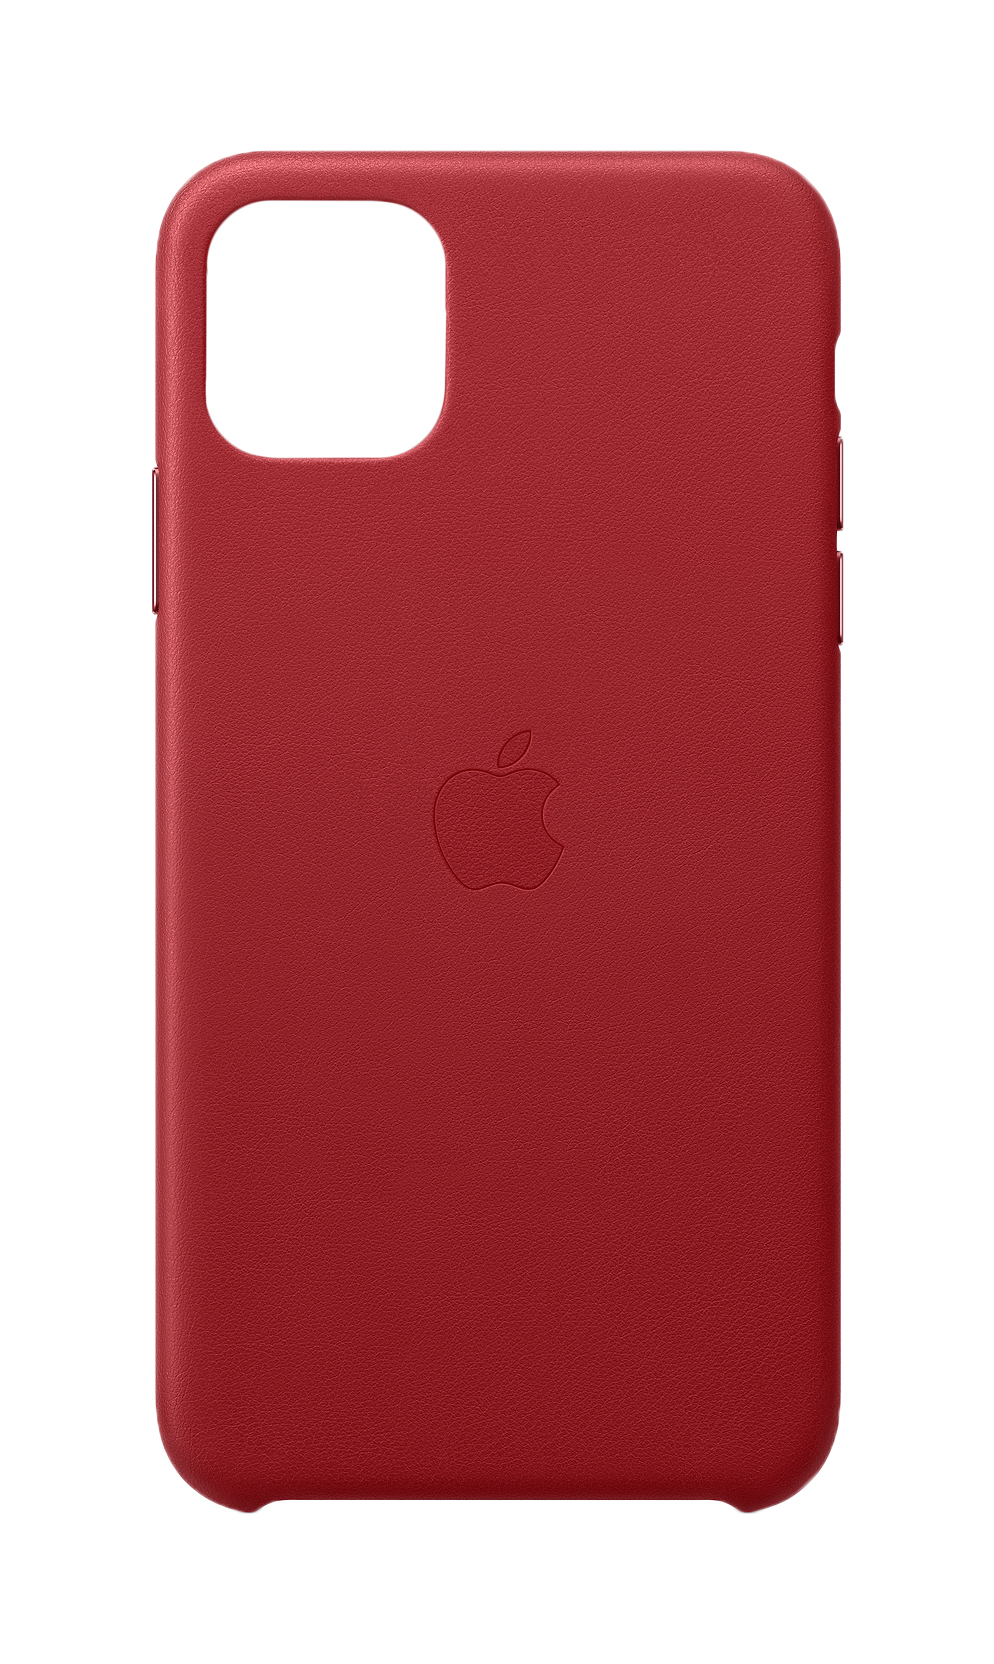 "Apple MX0F2ZM/A mobile phone case 16.5 cm (6.5"") Cover Red"